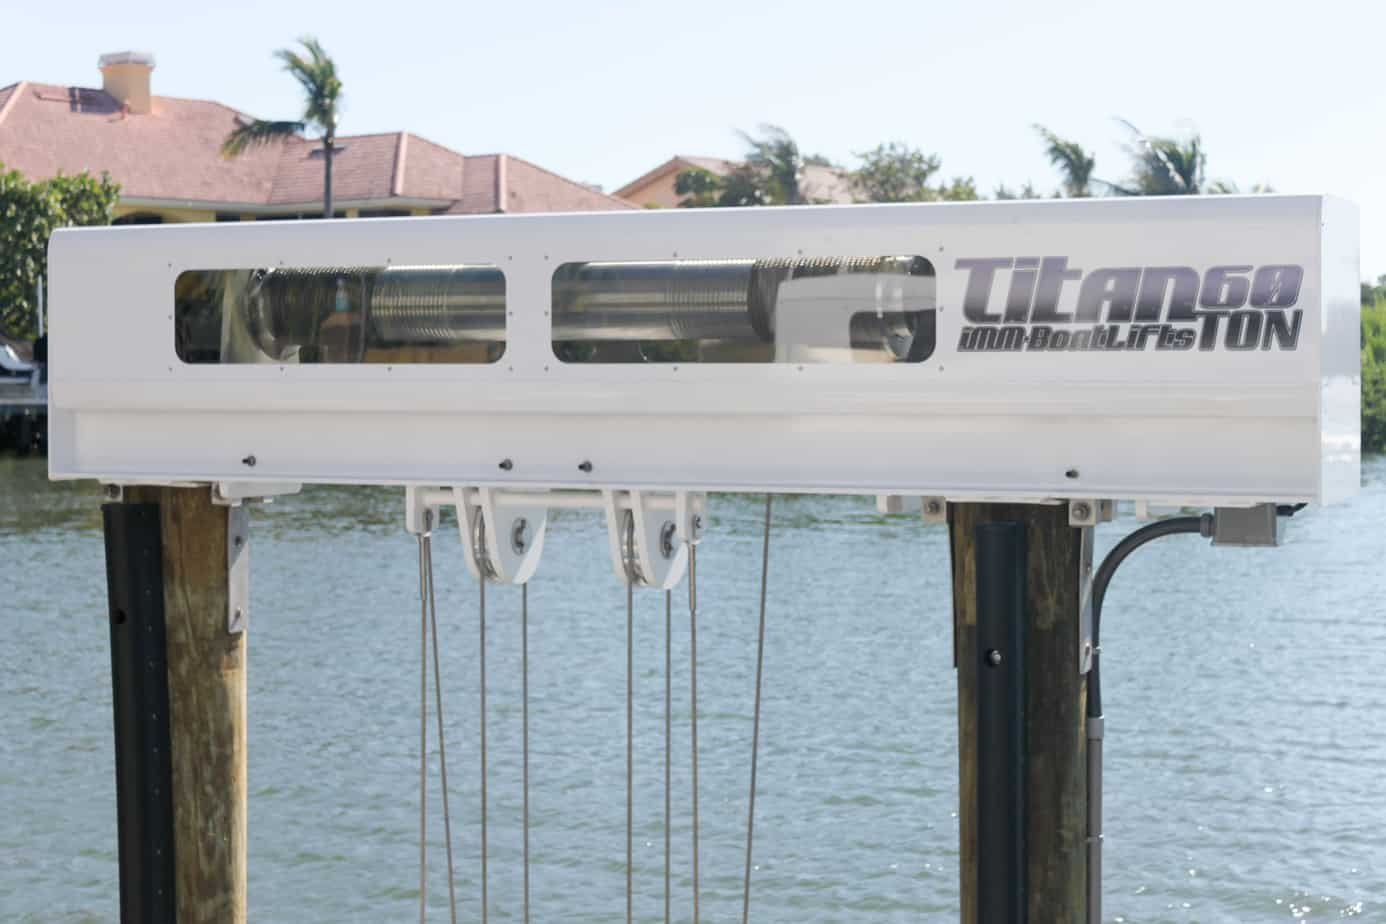 Yacht vs Boat: What's the Difference Between the Two? - image patented-technology-Titan-Beam on https://www.iqboatlifts.com